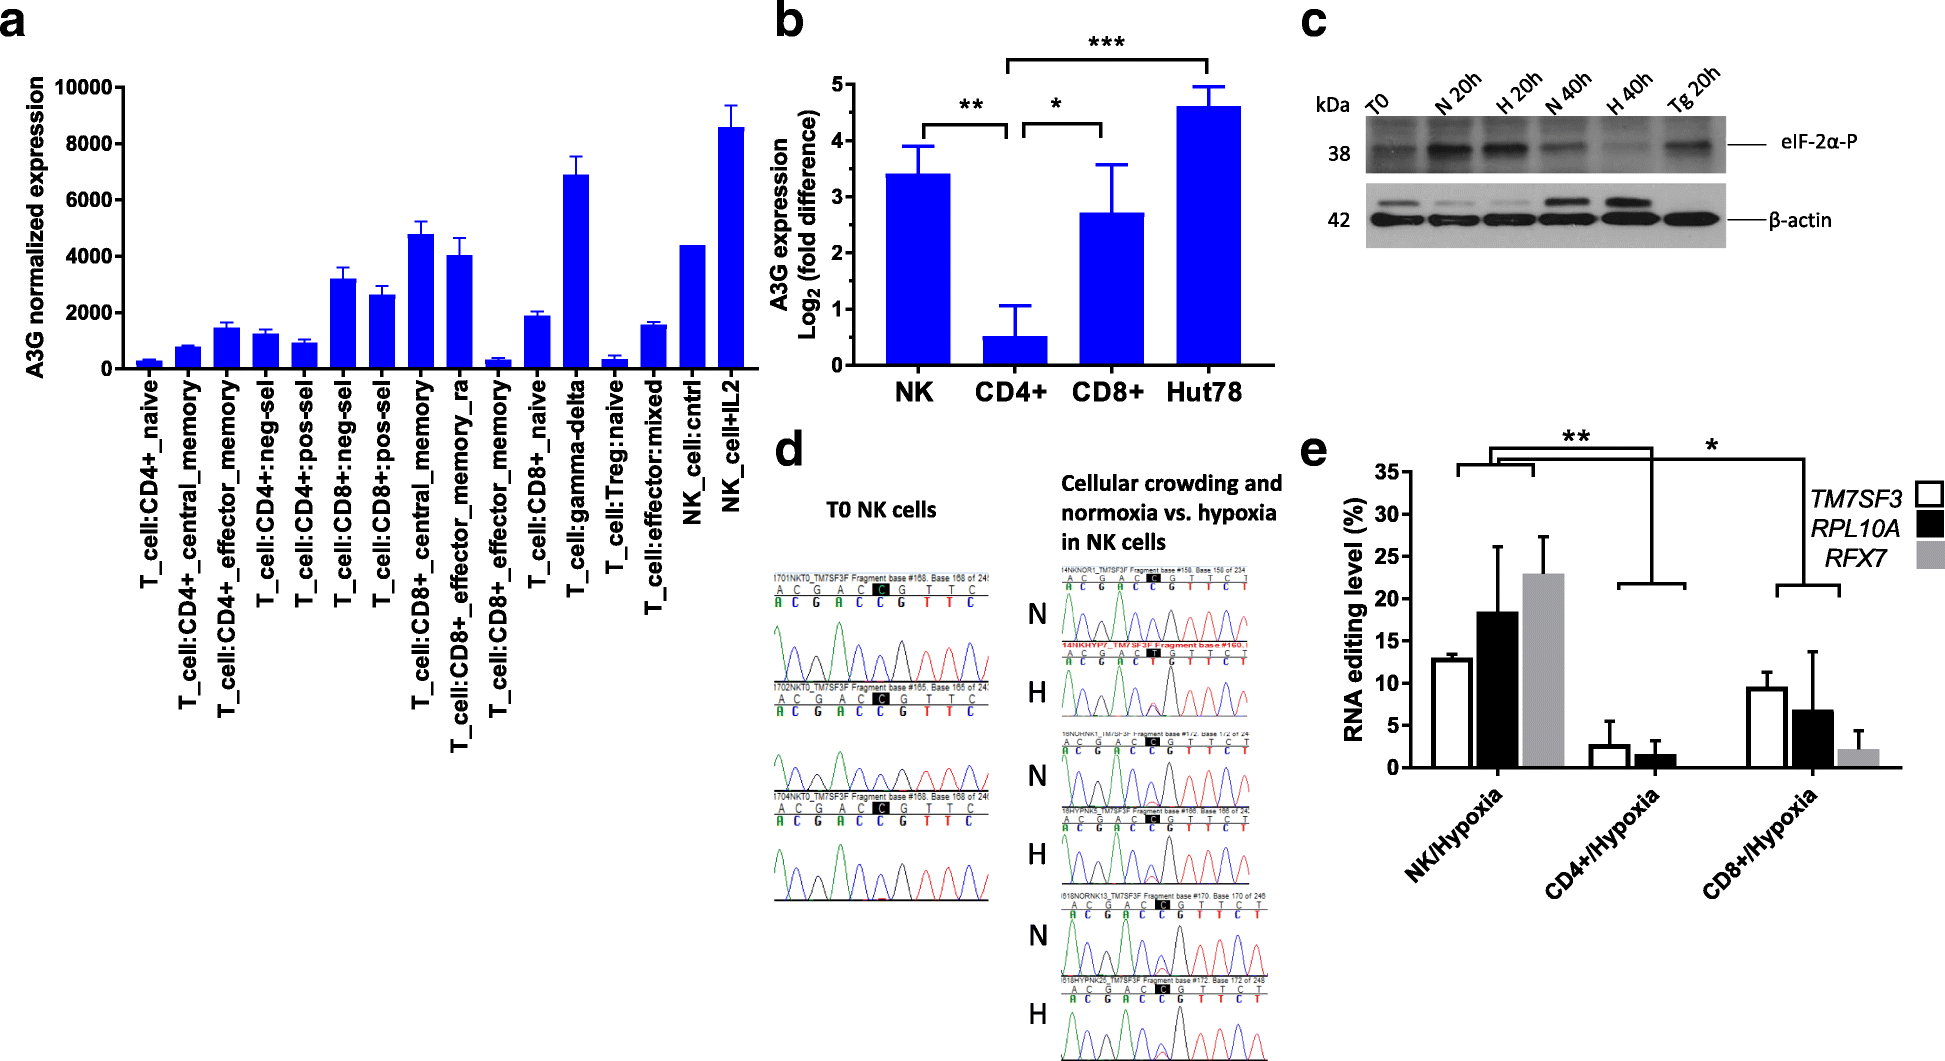 Cell type-specific expression of APOBEC3G